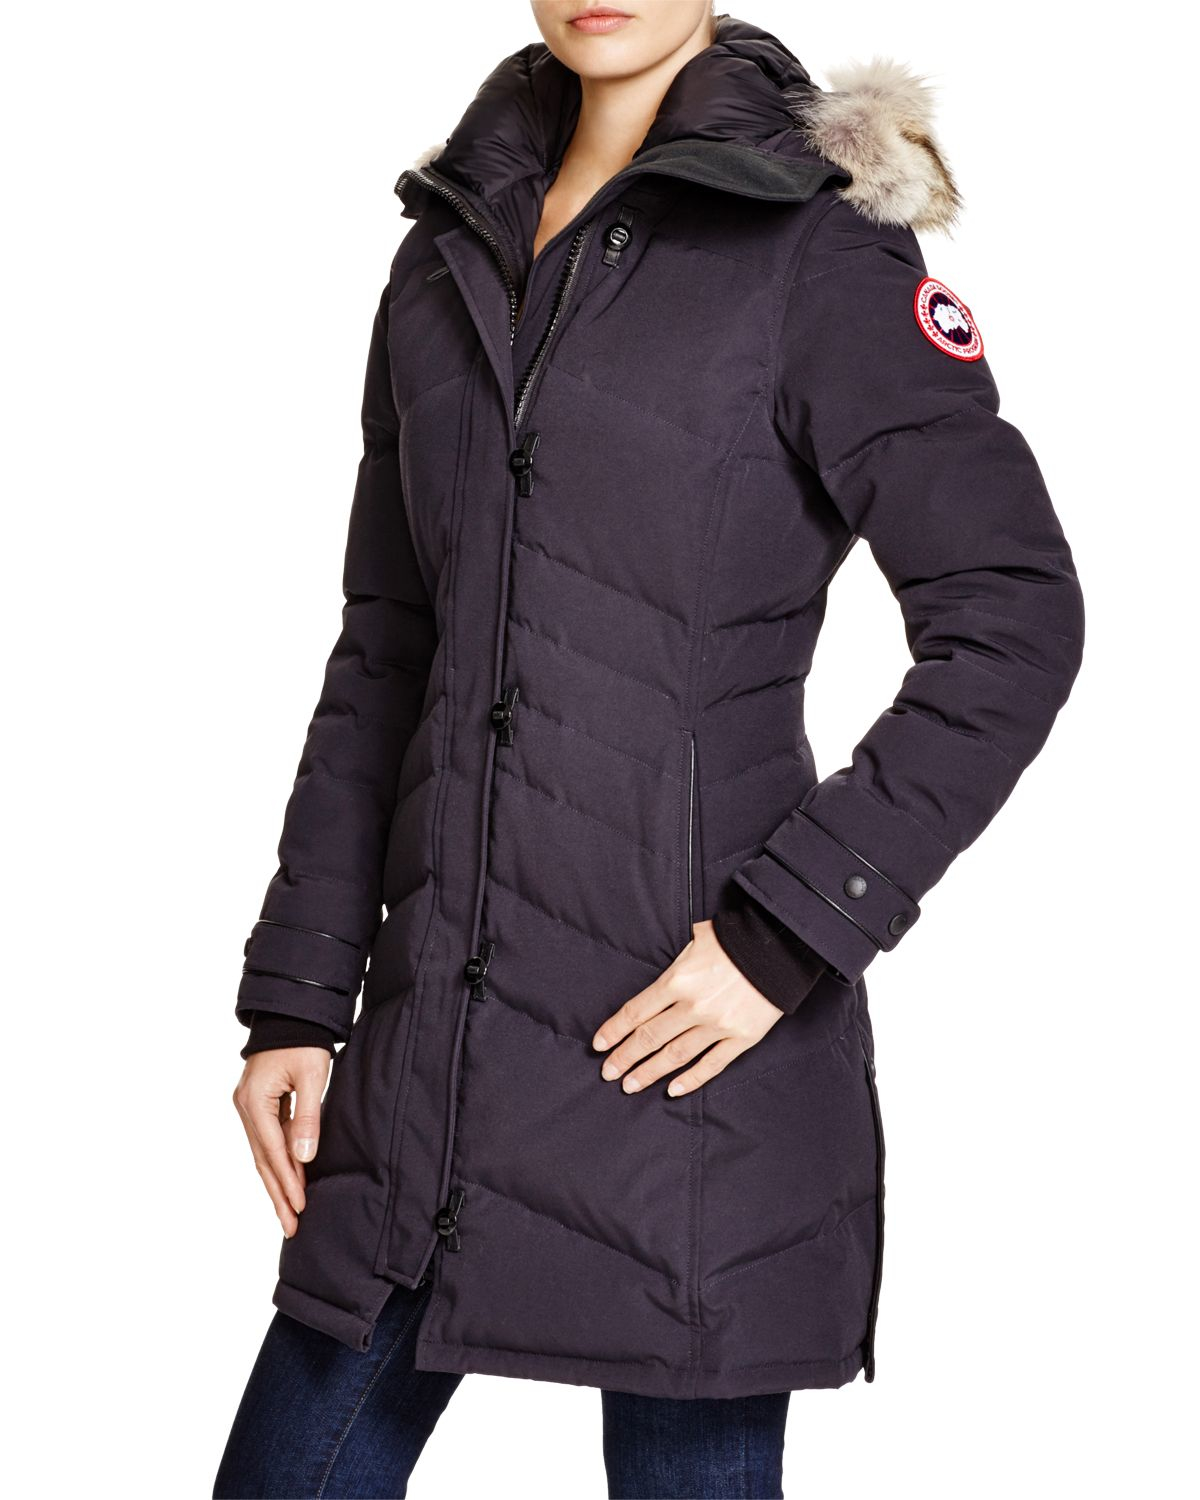 Canada Goose chateau parka outlet price - The Best Canada Goose Vs Swan Secure Shopping Online